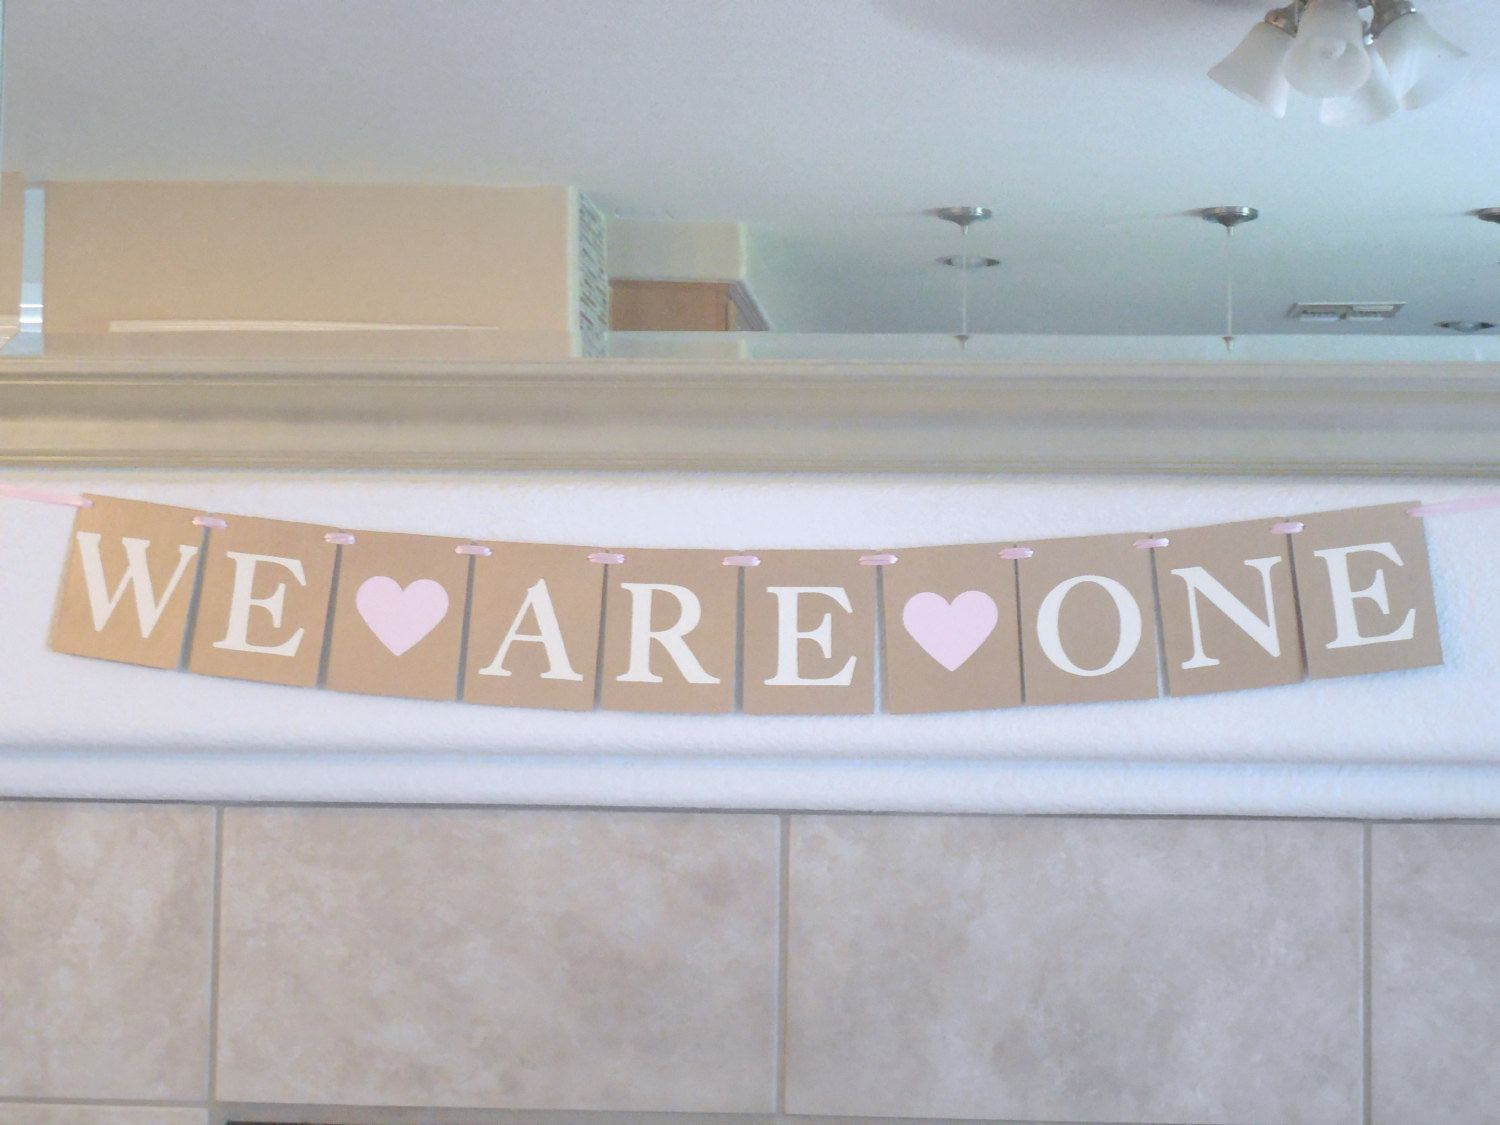 Twins First Birthday Banner Triplets First Birthday Banner We Are One Banner Multiples First Birthday Twins ONE decoration Twins Birthday by SignsationalSayings on Etsy https://www.etsy.com/listing/213777306/twins-first-birthday-banner-triplets